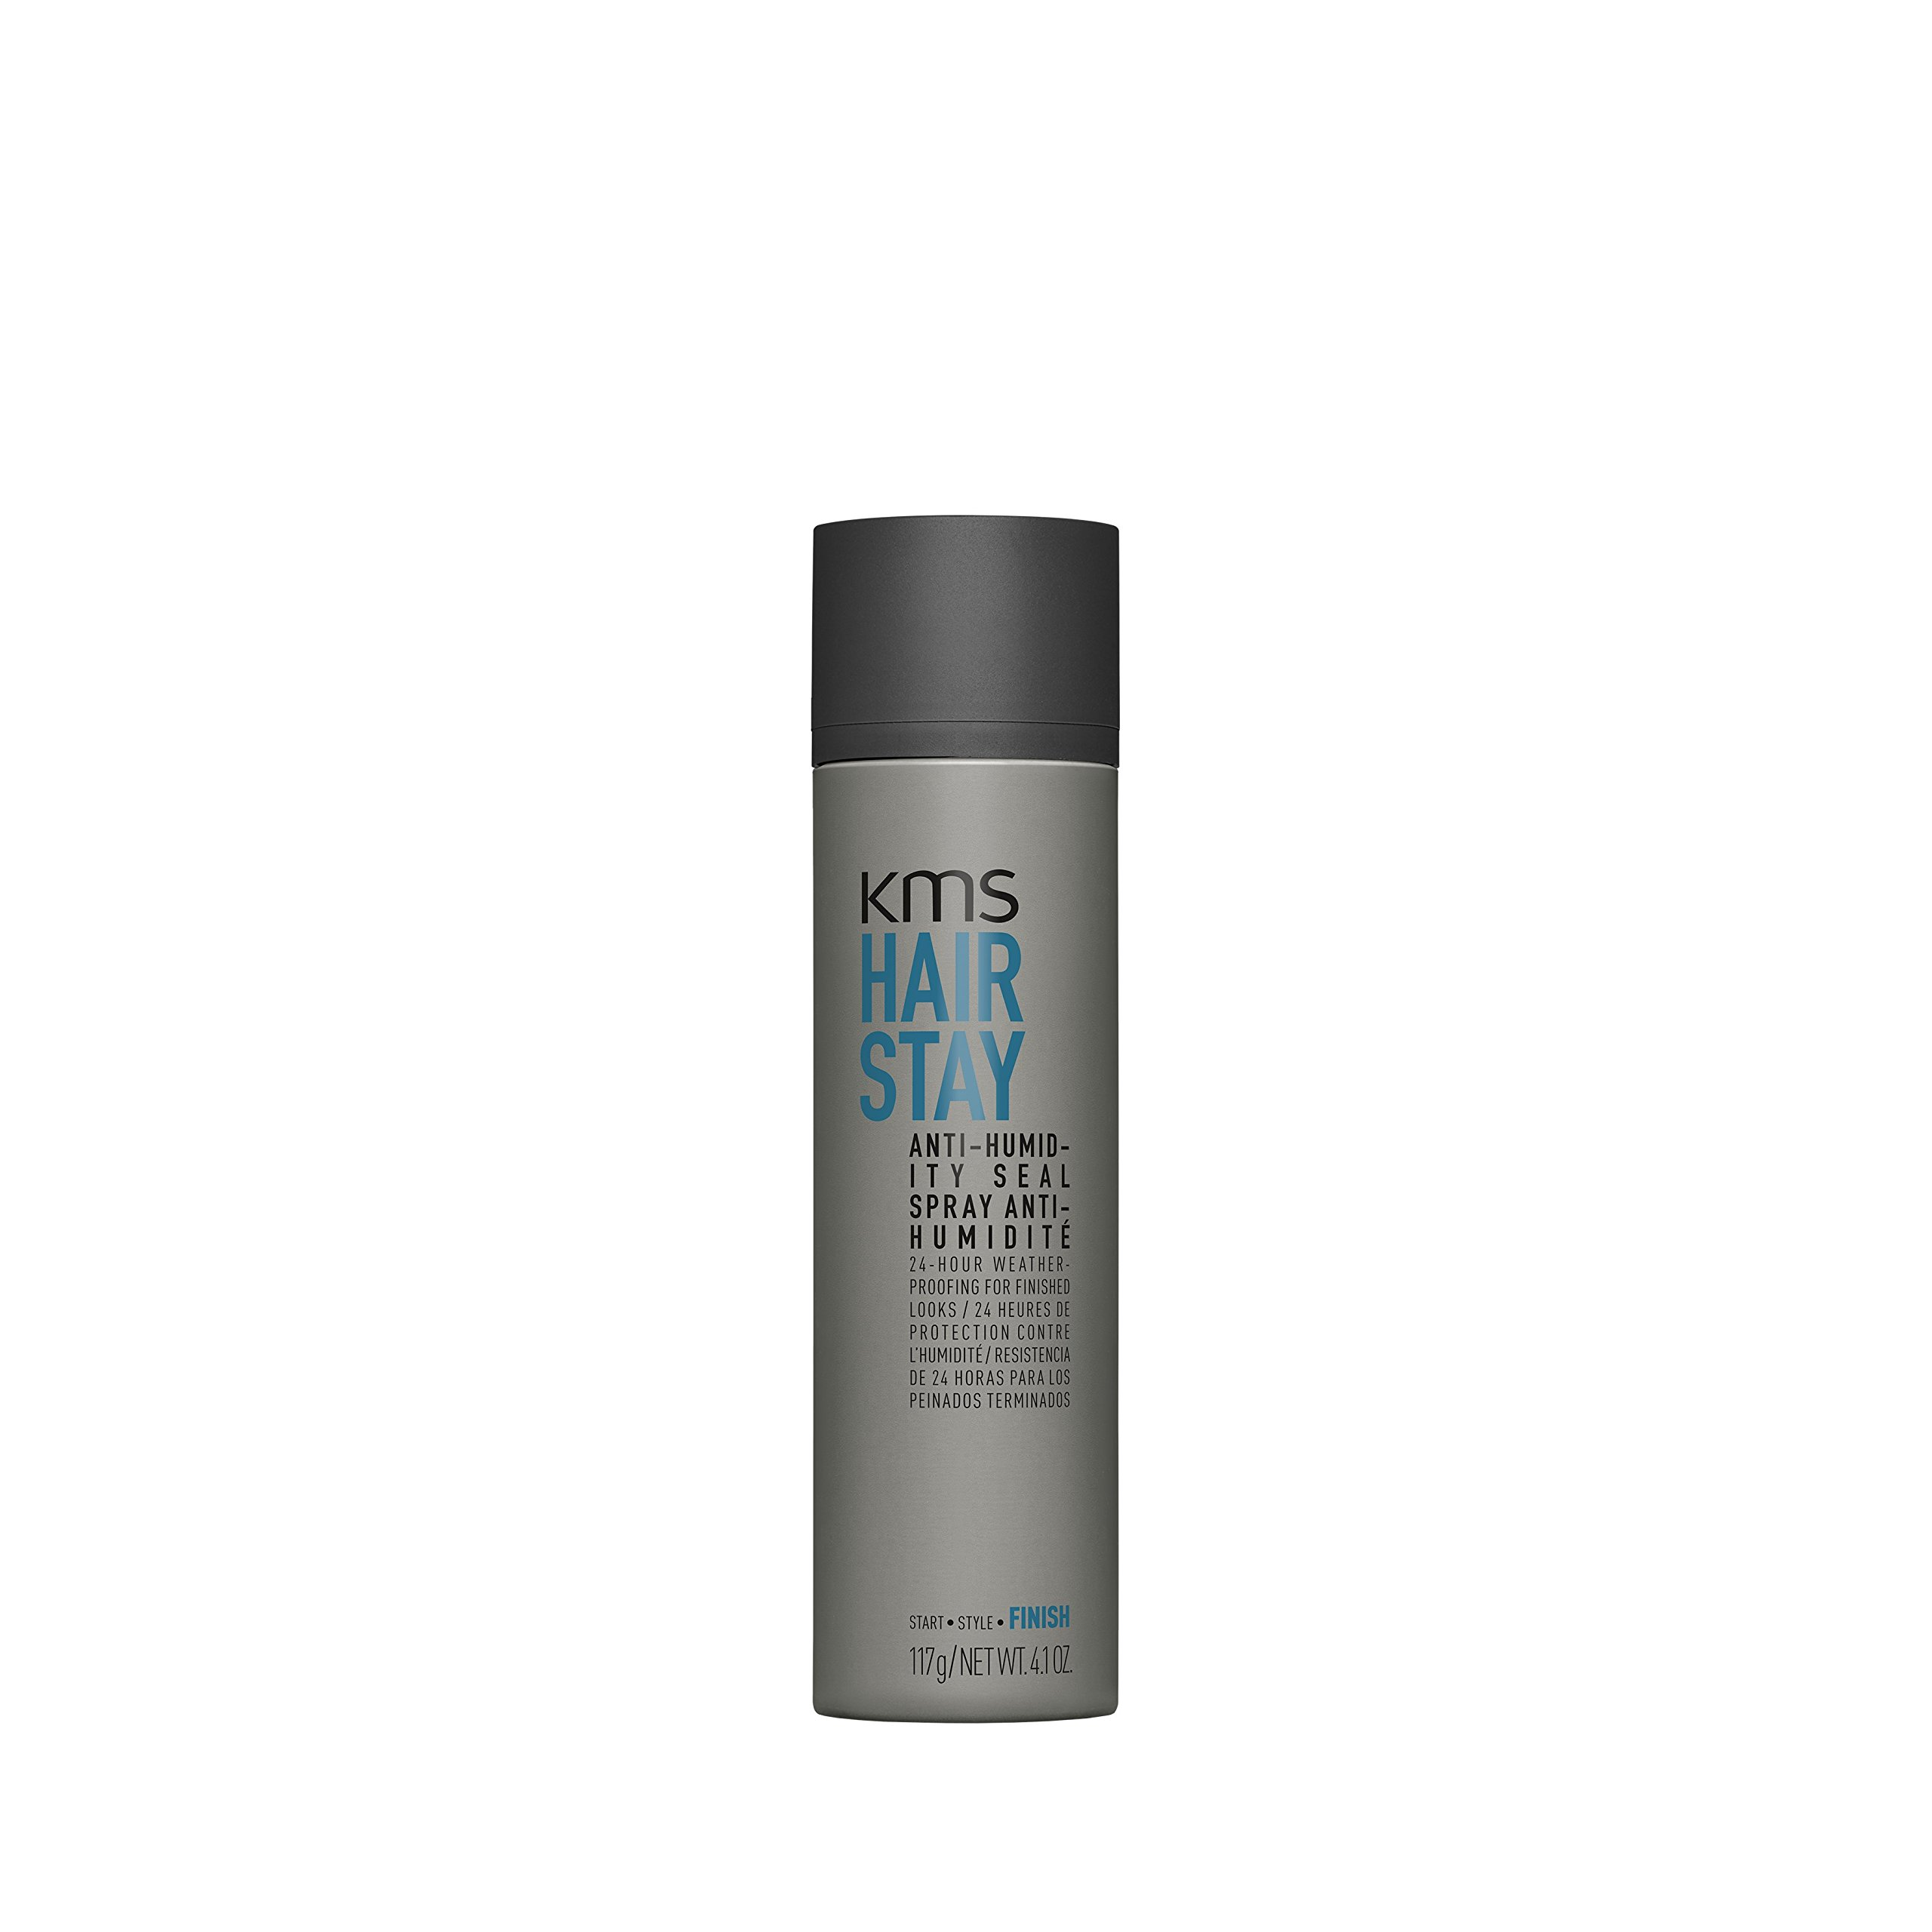 KMS HAIRSTAY Anti-Humidity Seal Spray - Weightless, Natural Shine, Flexible Shield,